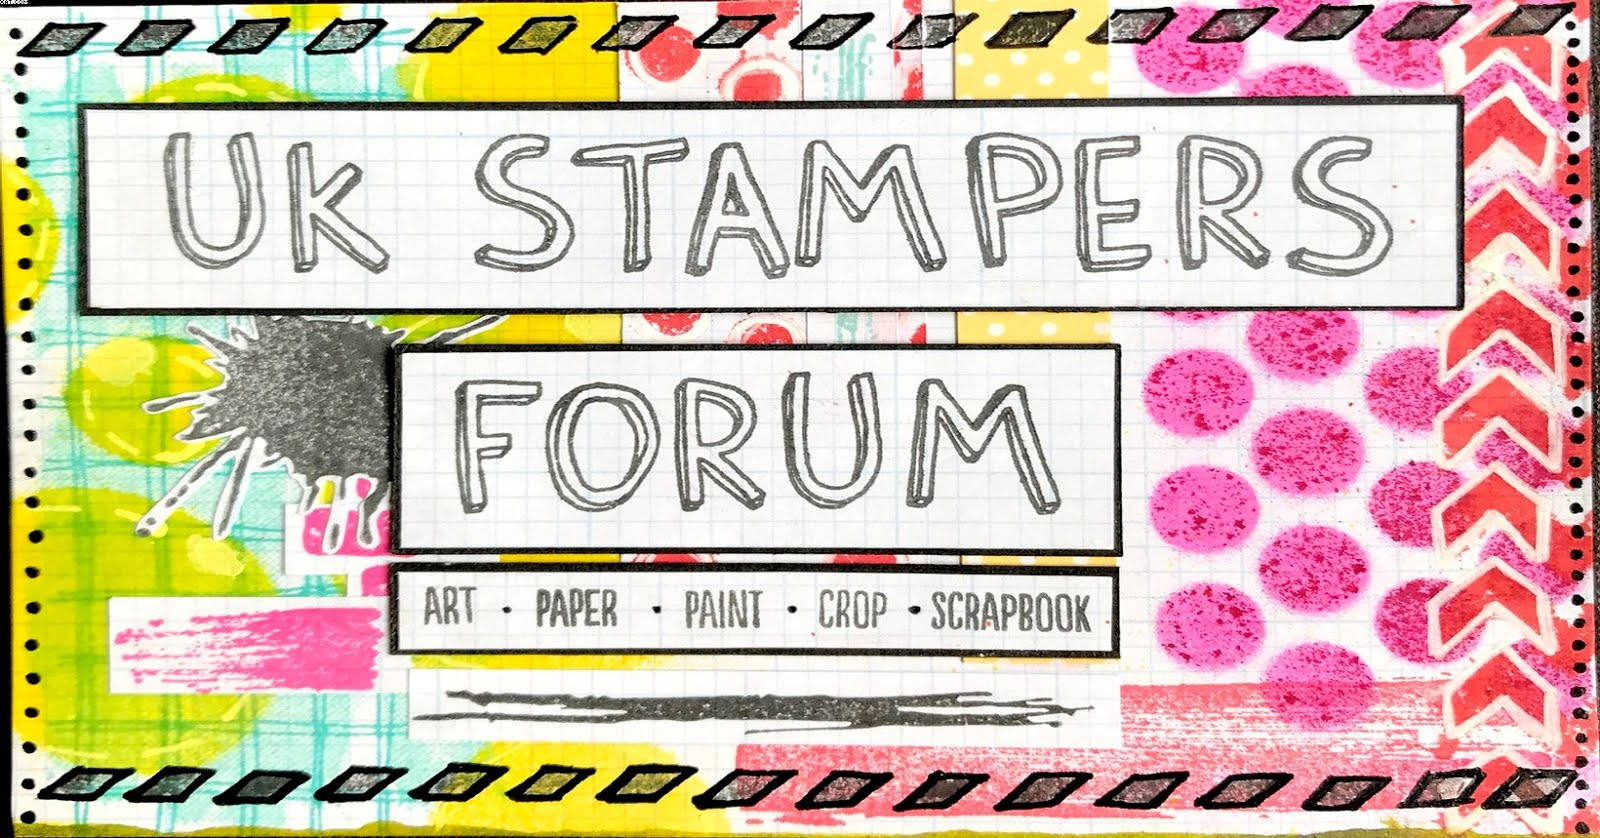 Why Not Join UK Stampers Forum, It's free, friendly & fun ....Just Click the Logo